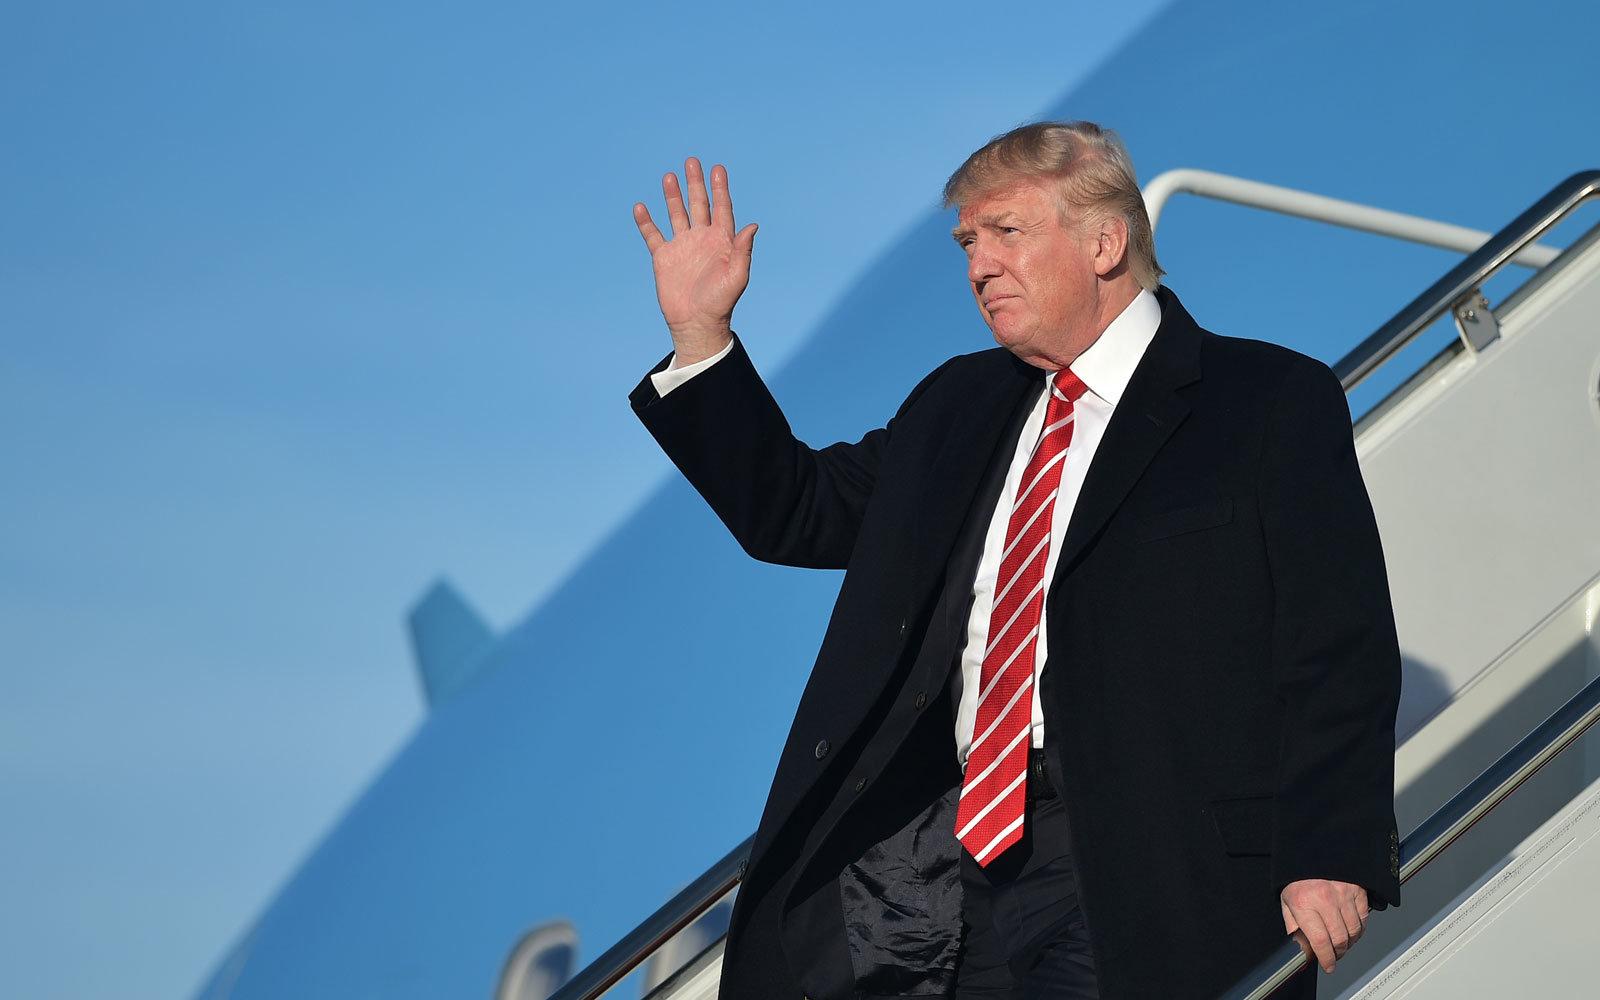 Trump impressed a plane can look so beautiful at 30.